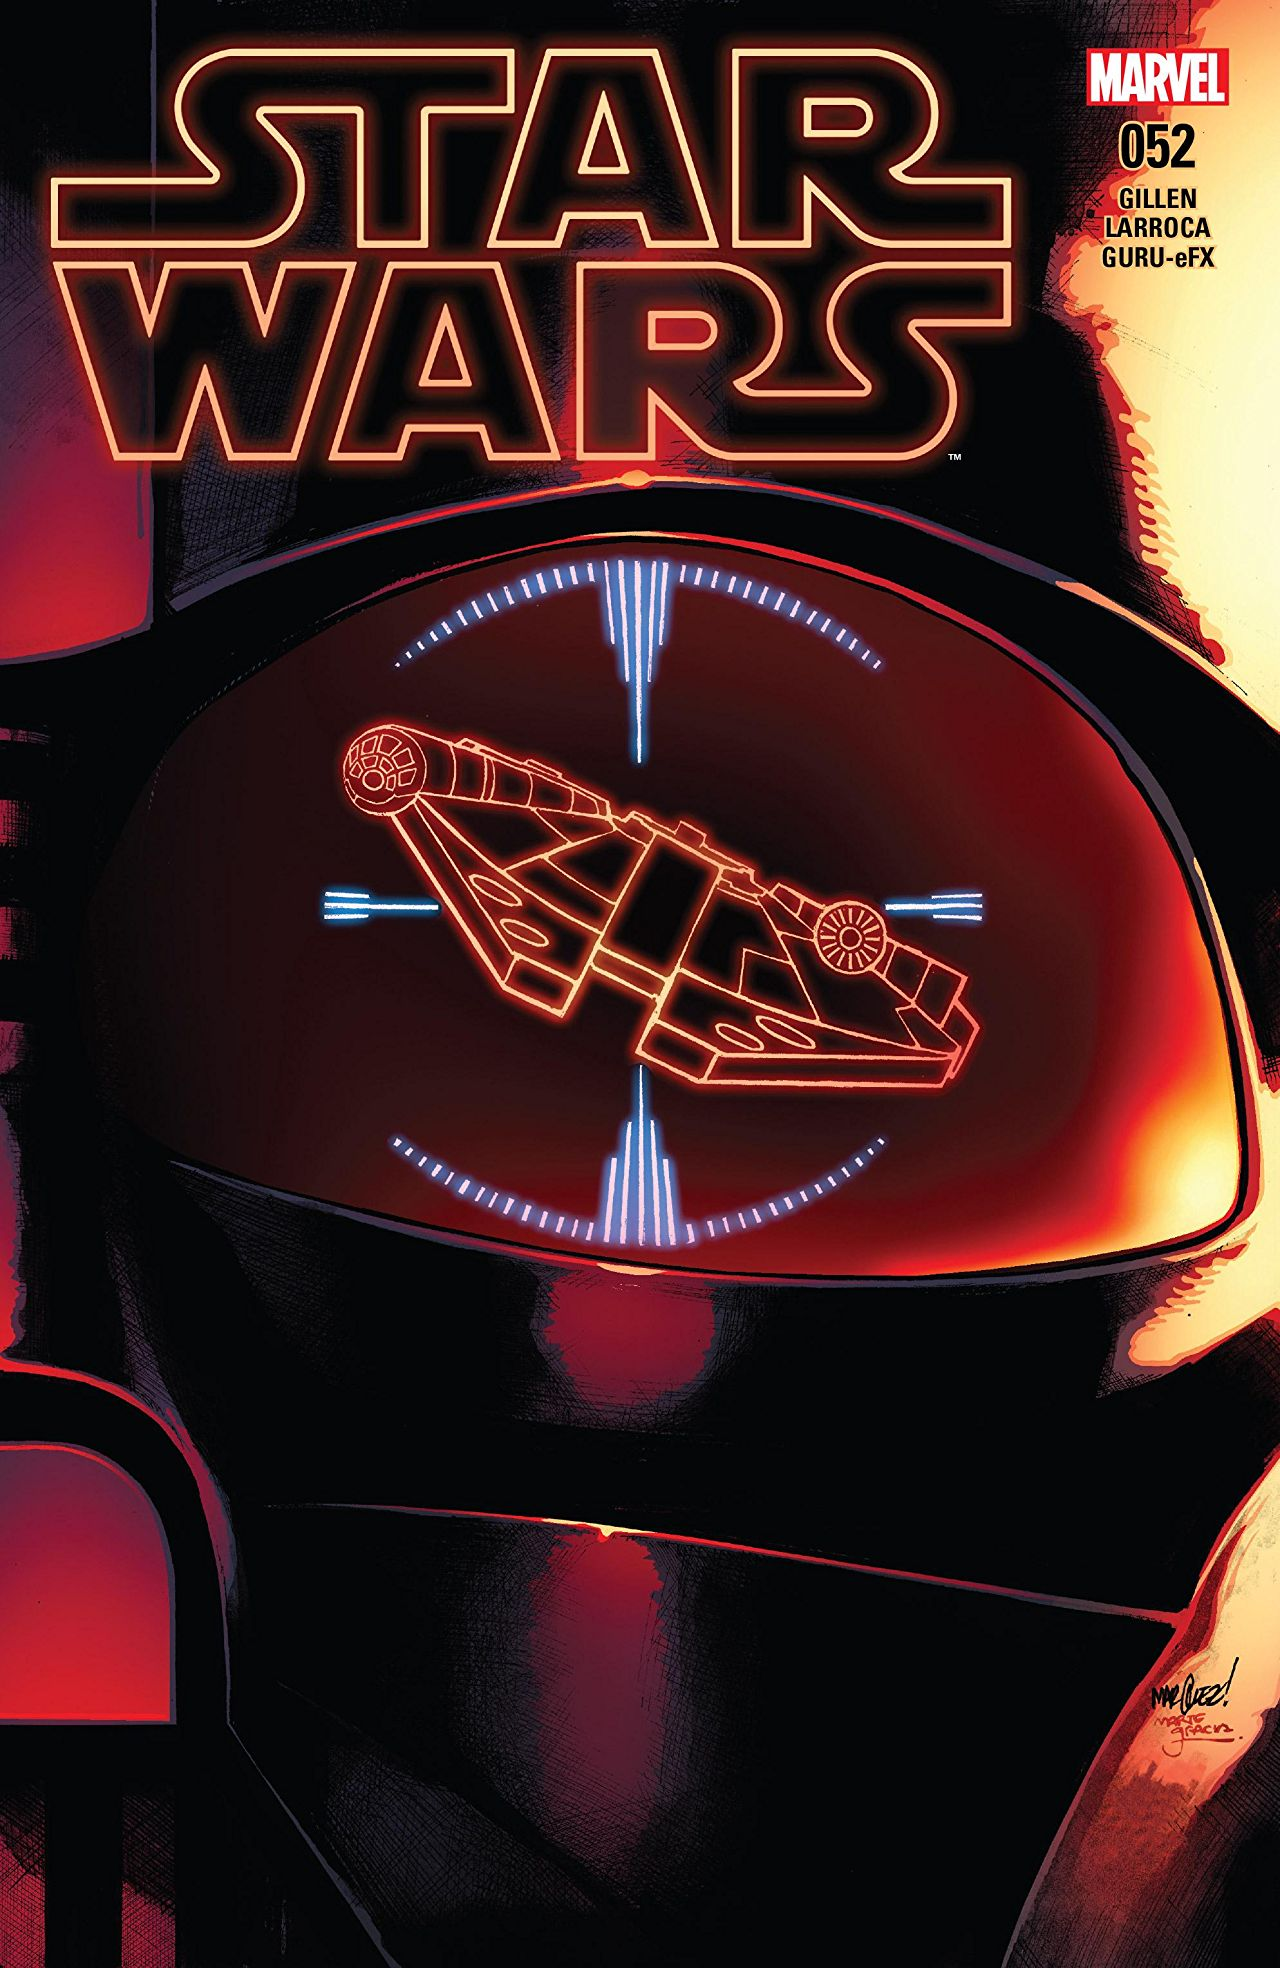 Star Wars #52 Cover art